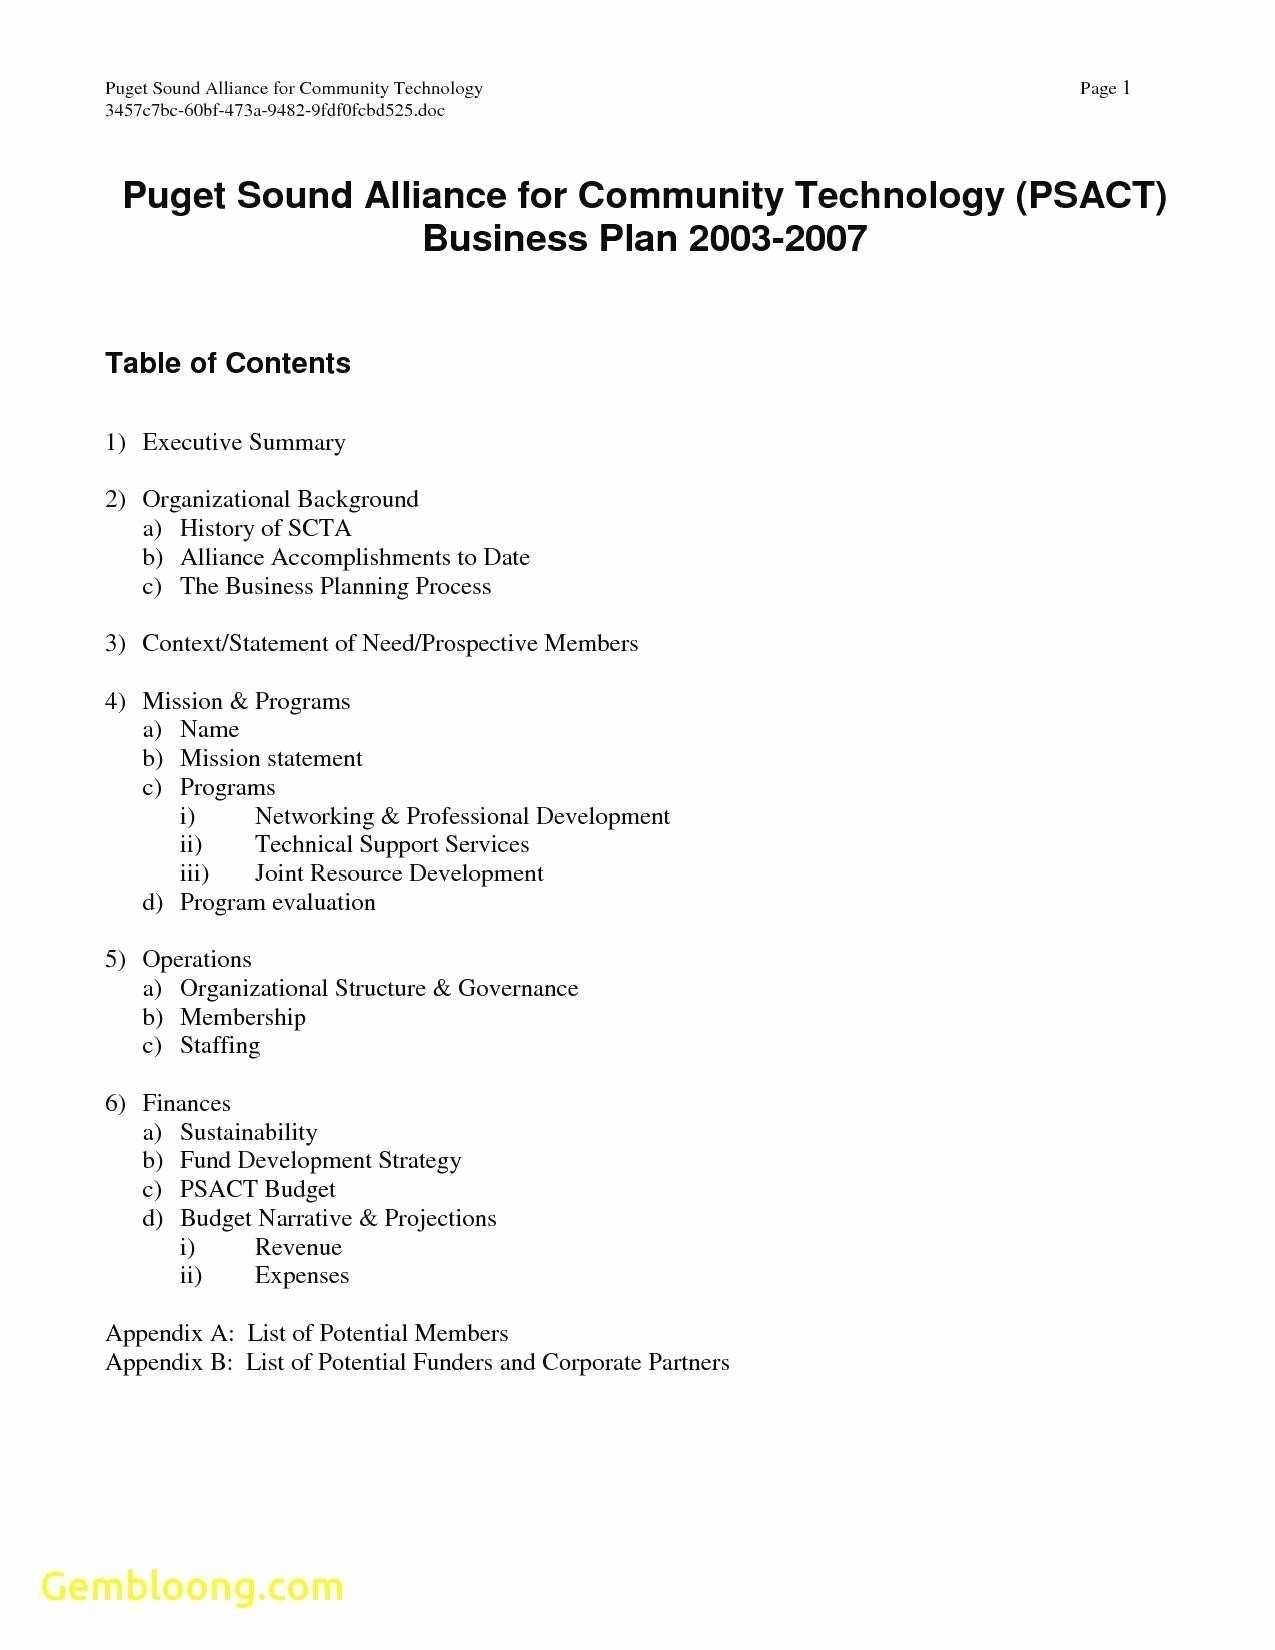 Strategic Plan Template for Nonprofits Beautiful Inspirational Strategic Plan Examples for Nonprofits